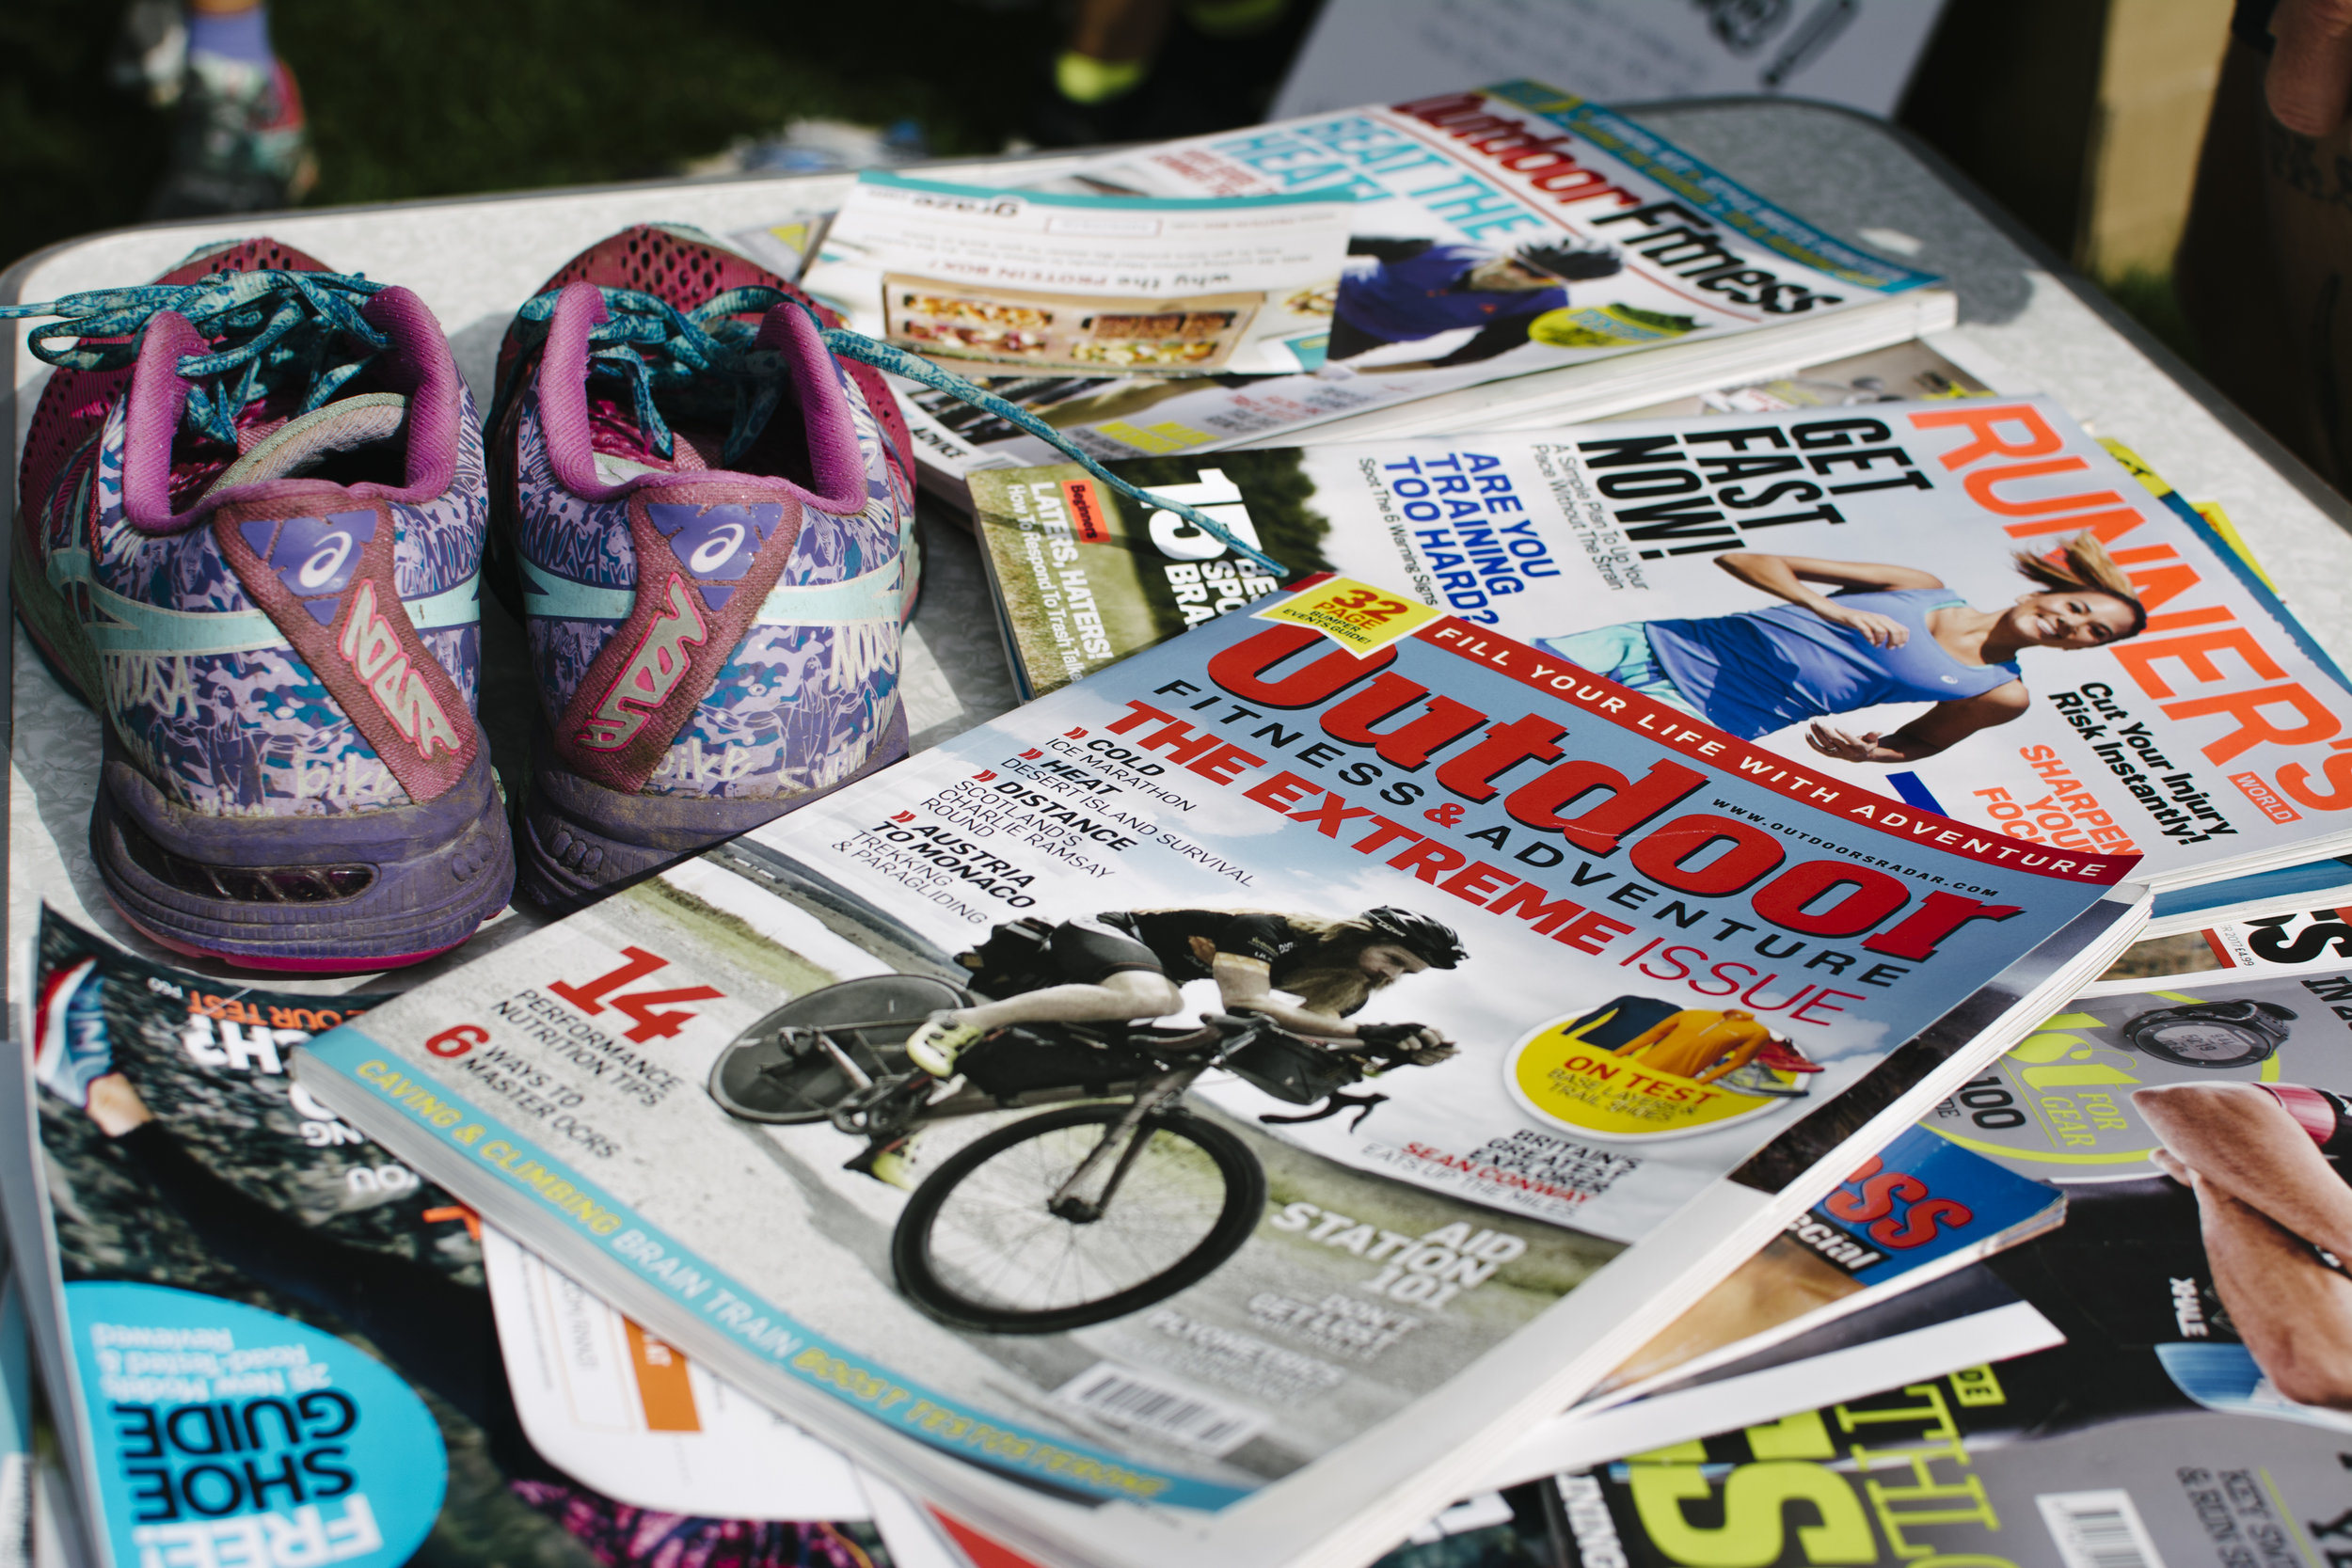 Swap Box also gives away old running and fitness magazines